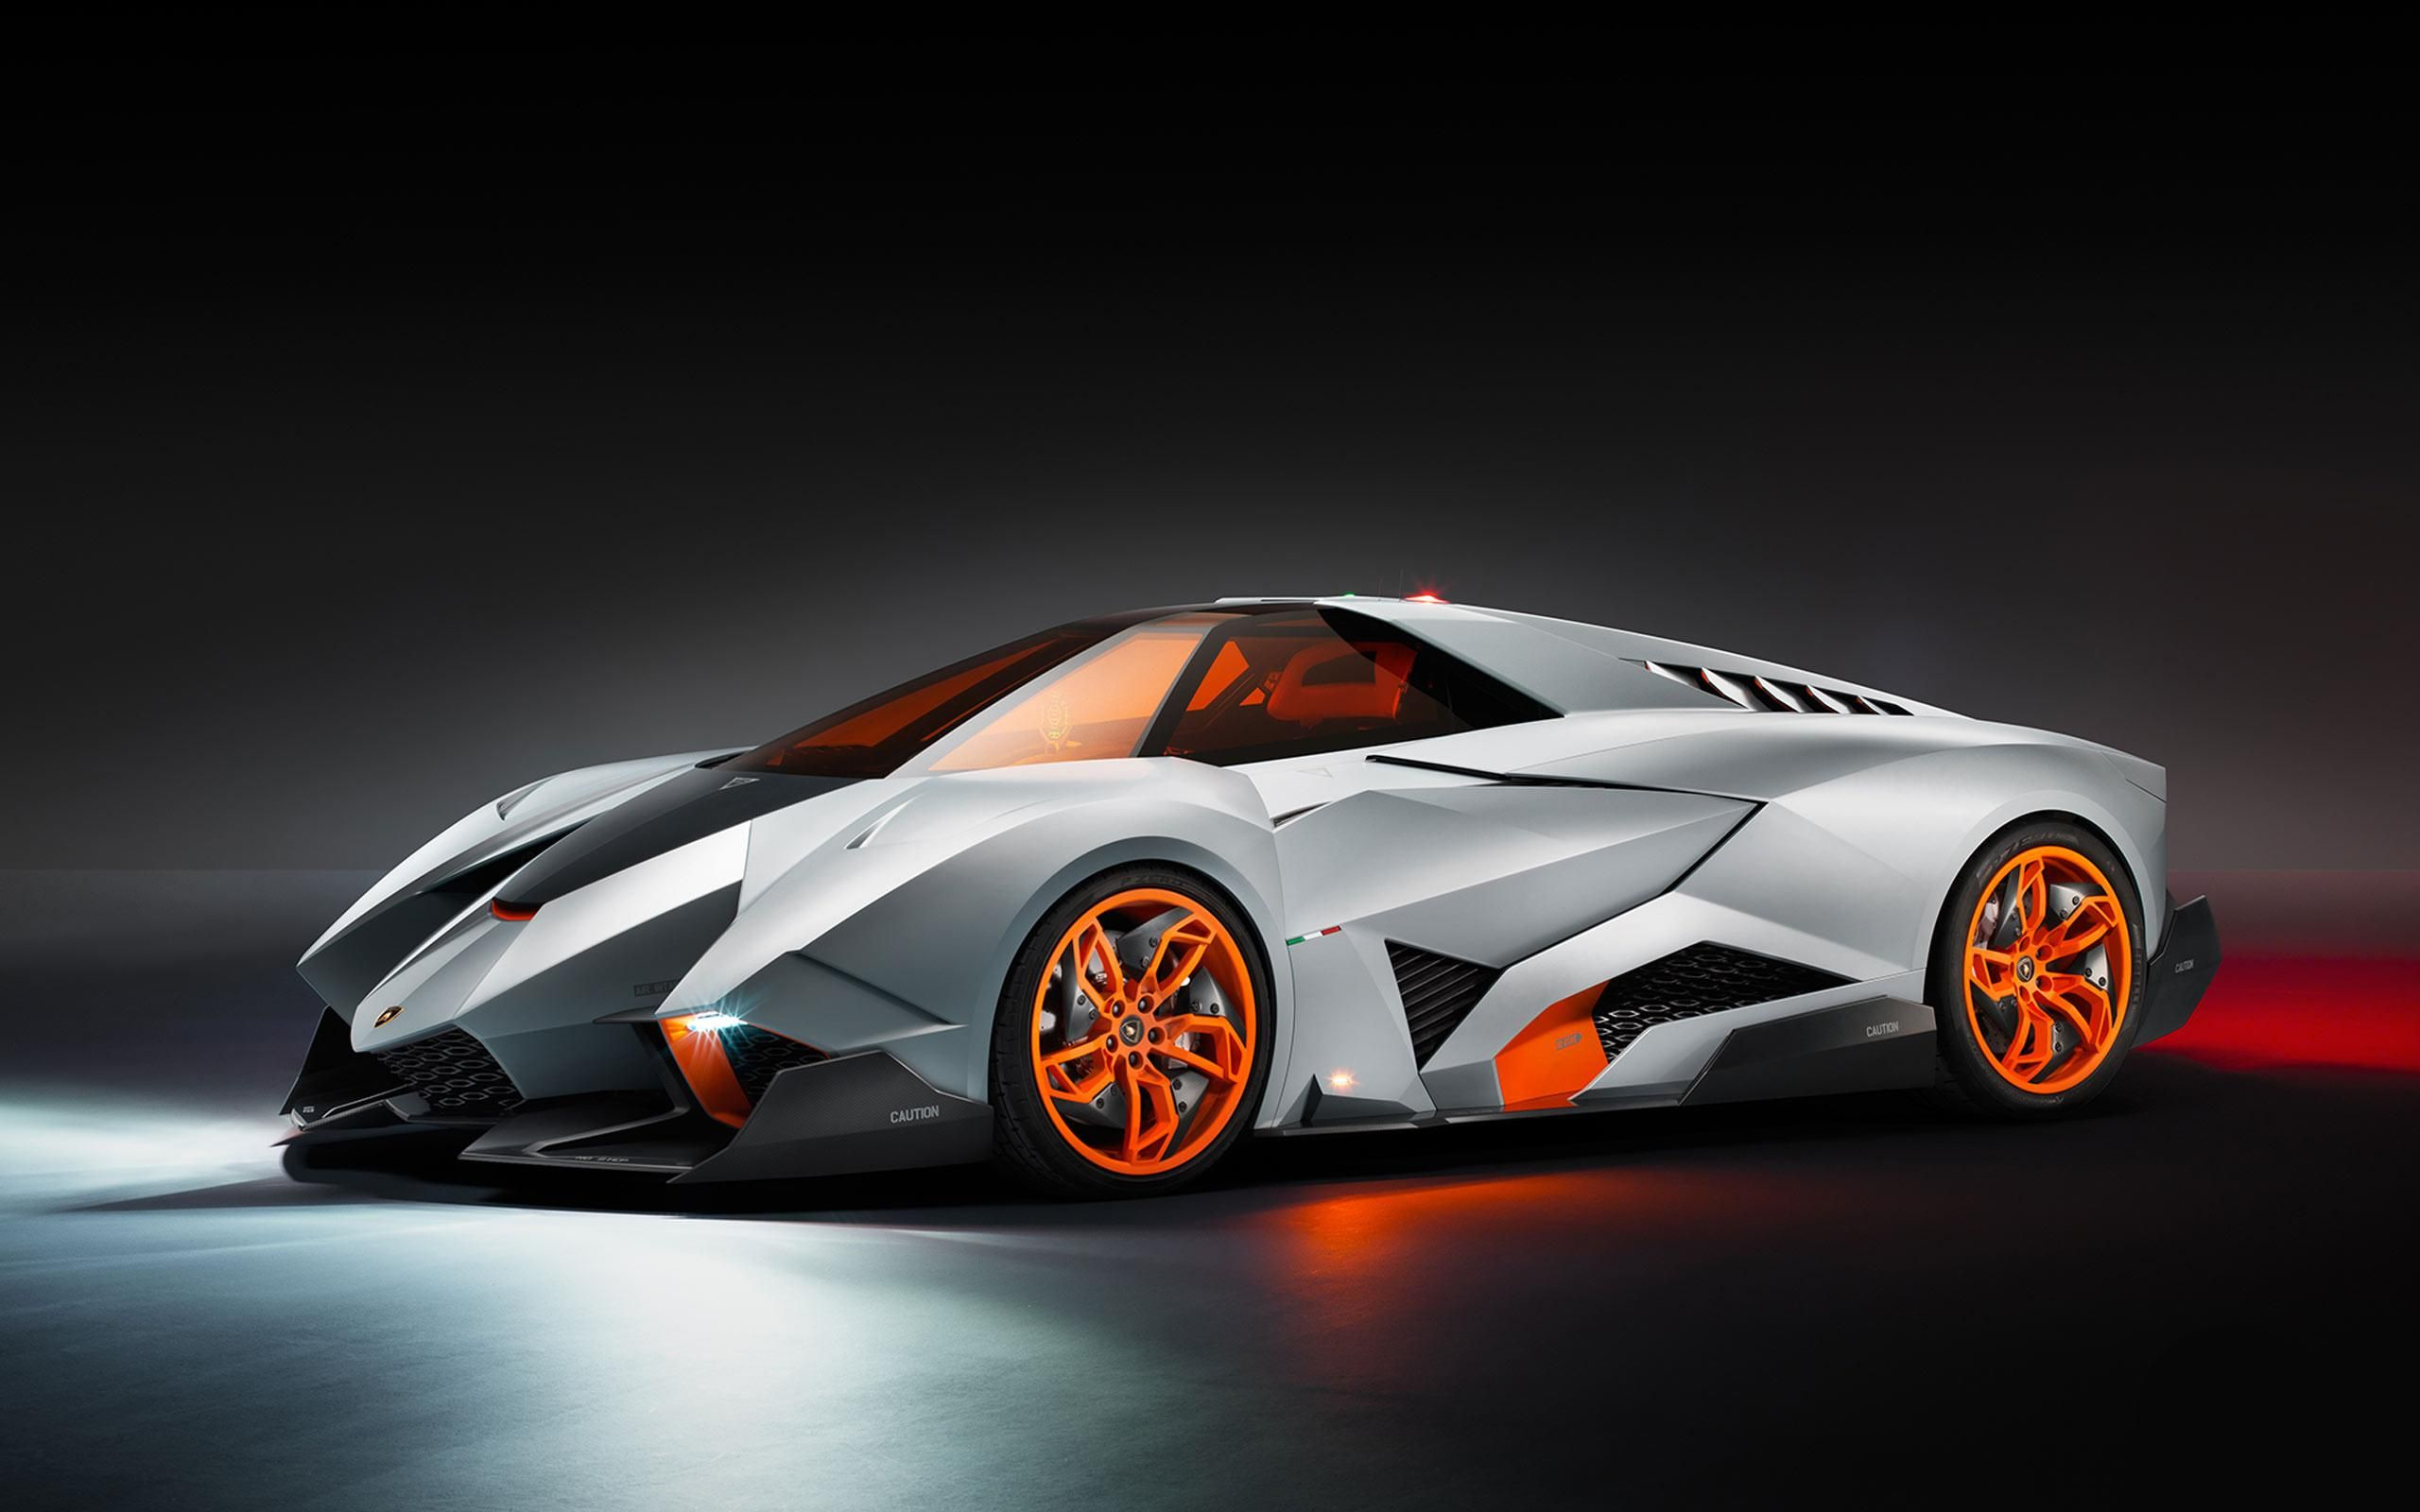 show see t was geneva didn s stephan supercar with its motor veneno the ceo image lamborghini until at didnt it new winkelman finished cars lamborghinis